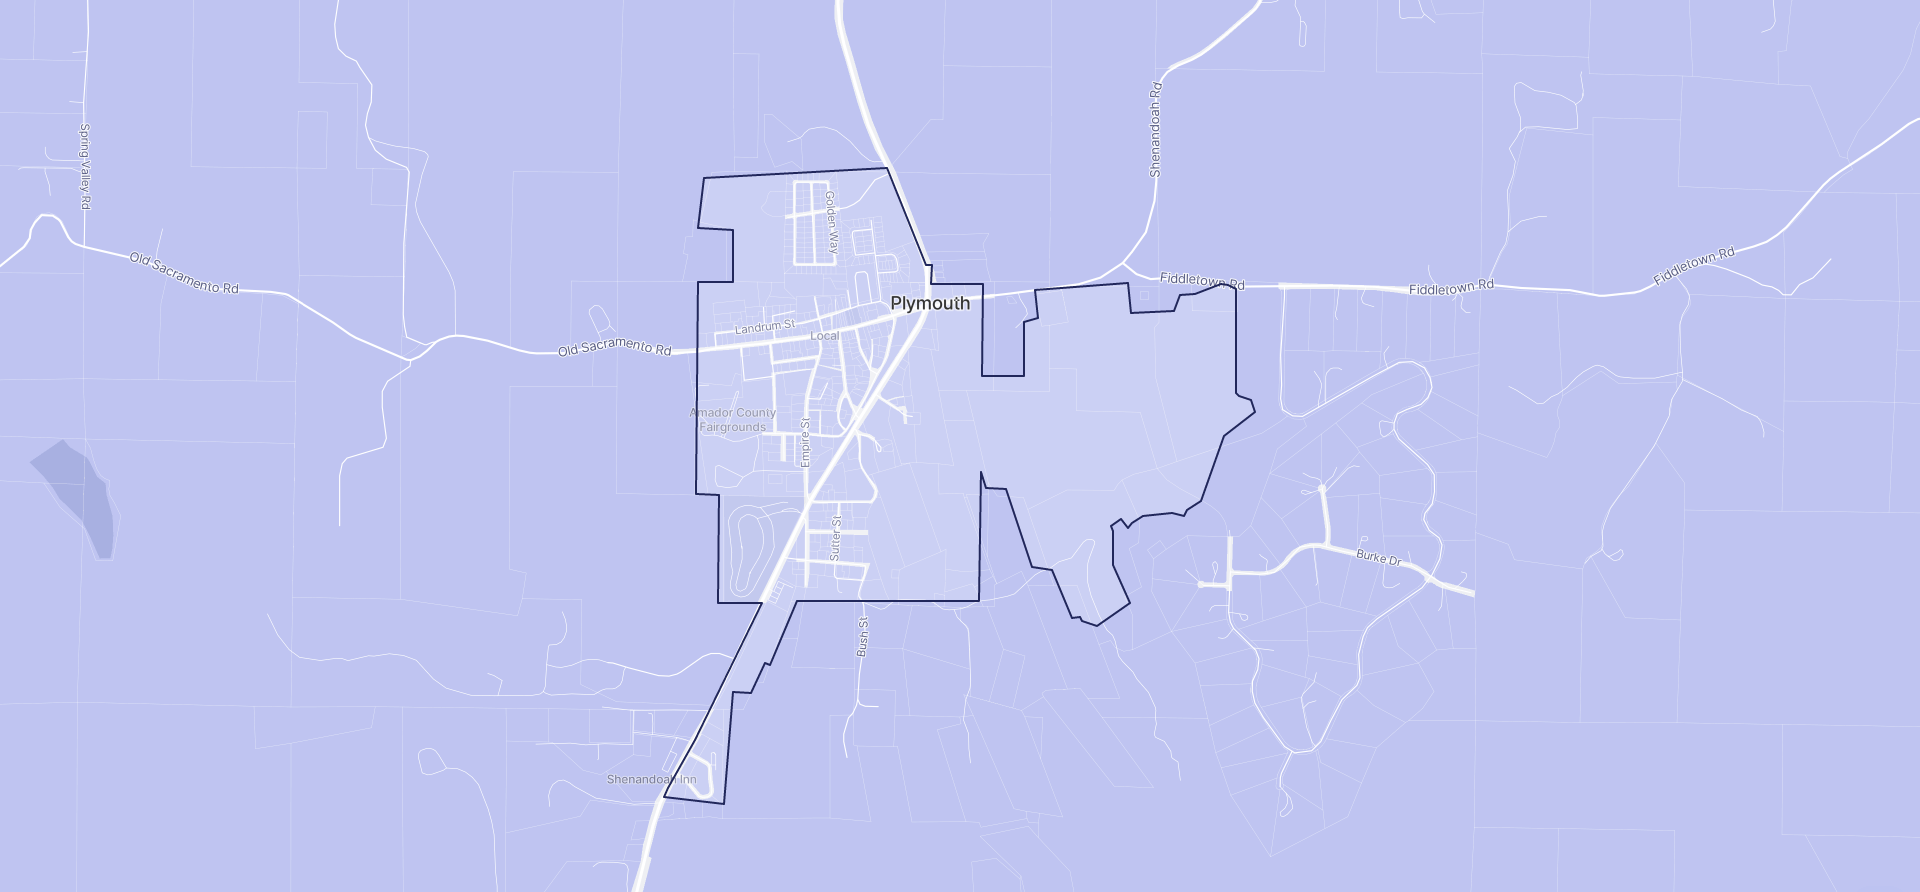 Image of Plymouth boundaries on a map.